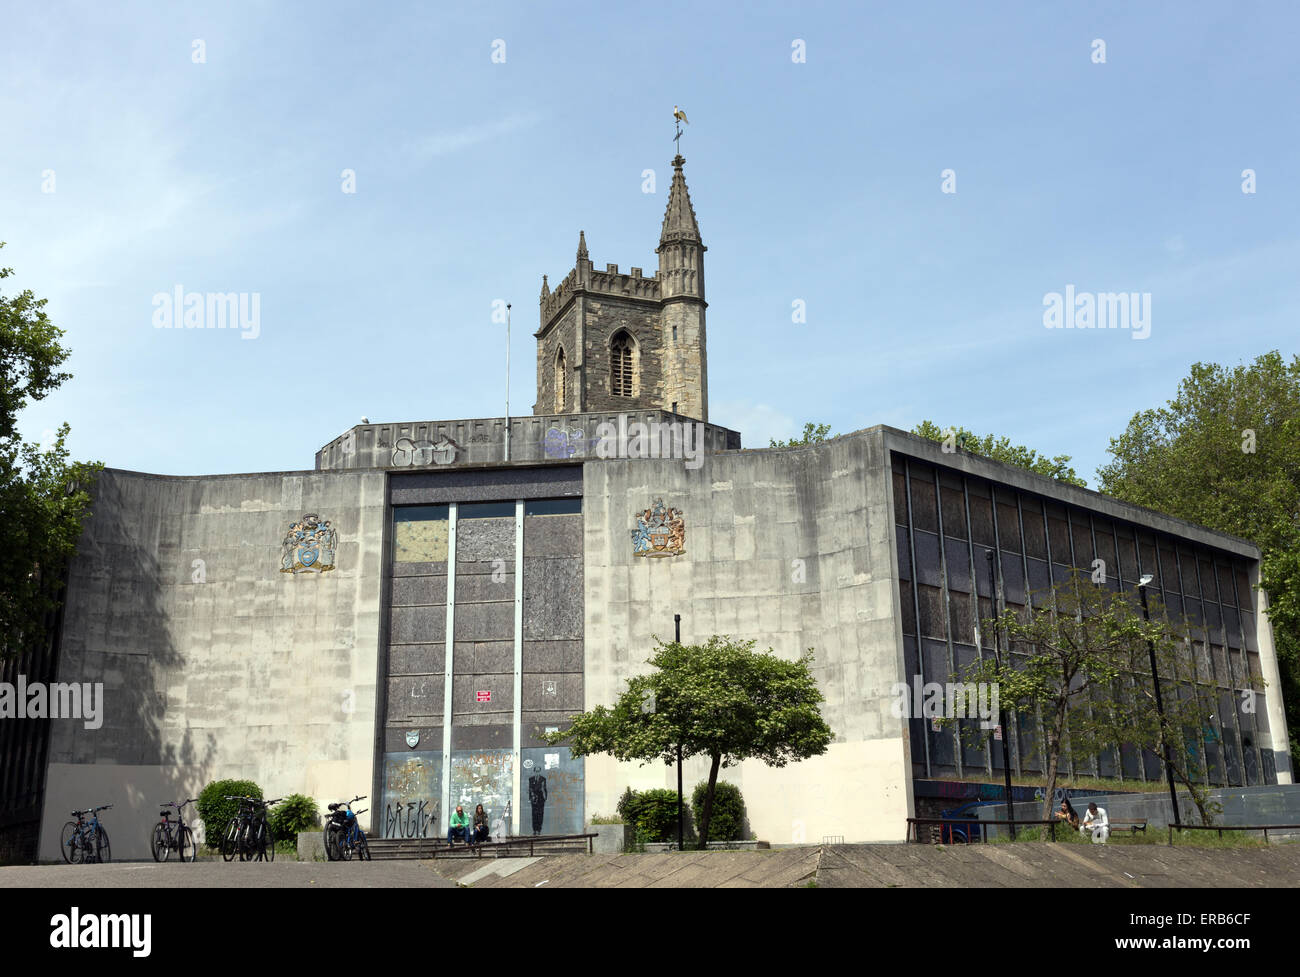 The Norwich Union building and St Mary le Port church, Bristol, England Stock Photo